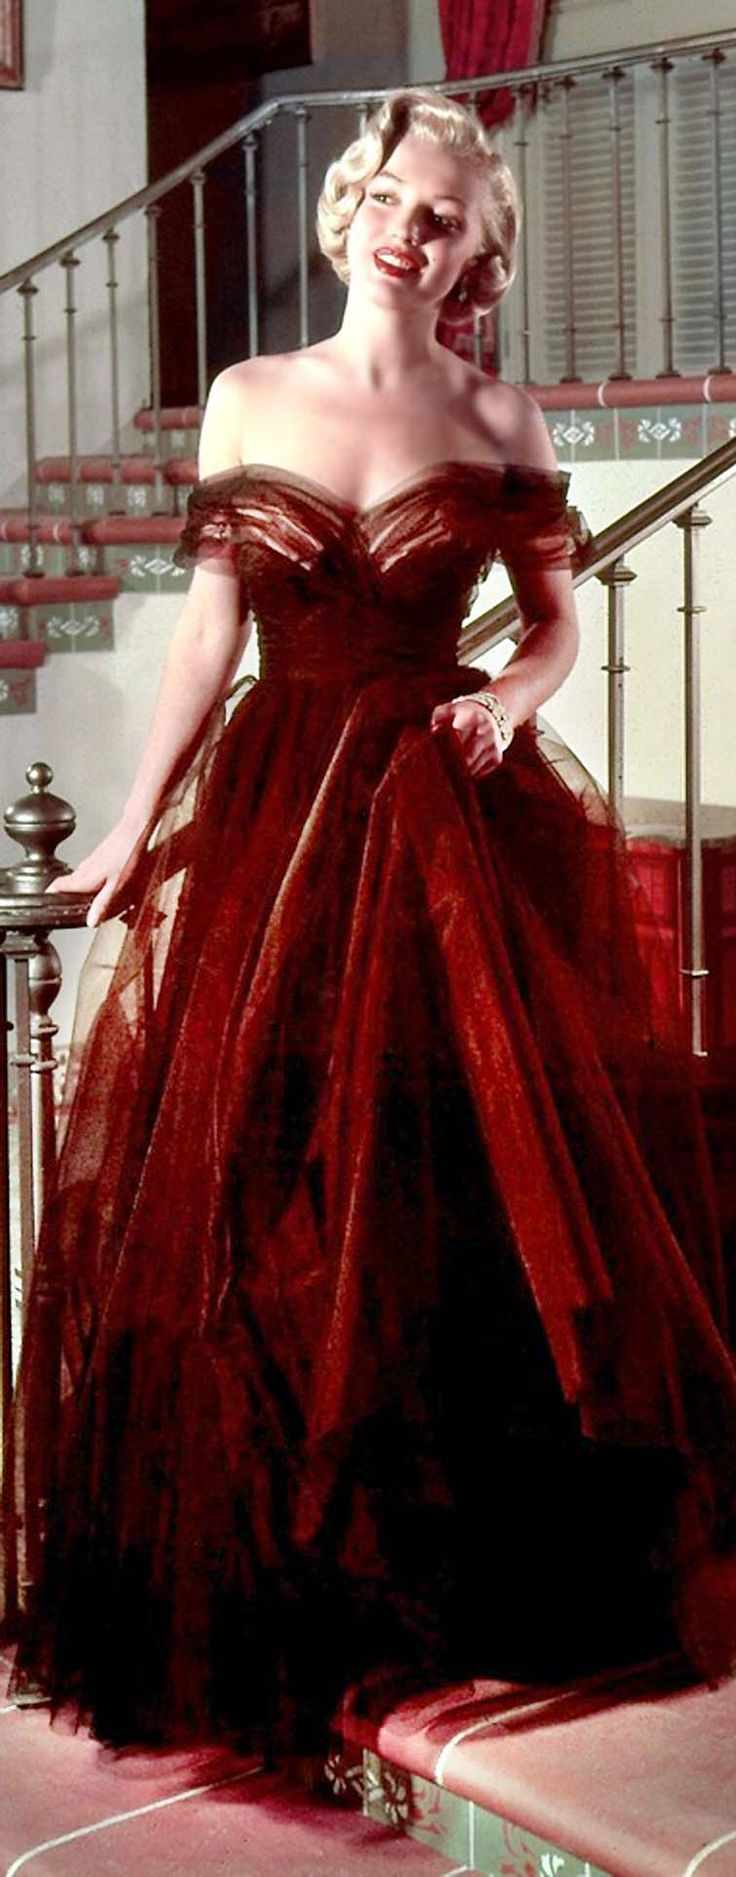 Red dress 1946 symbolism gold